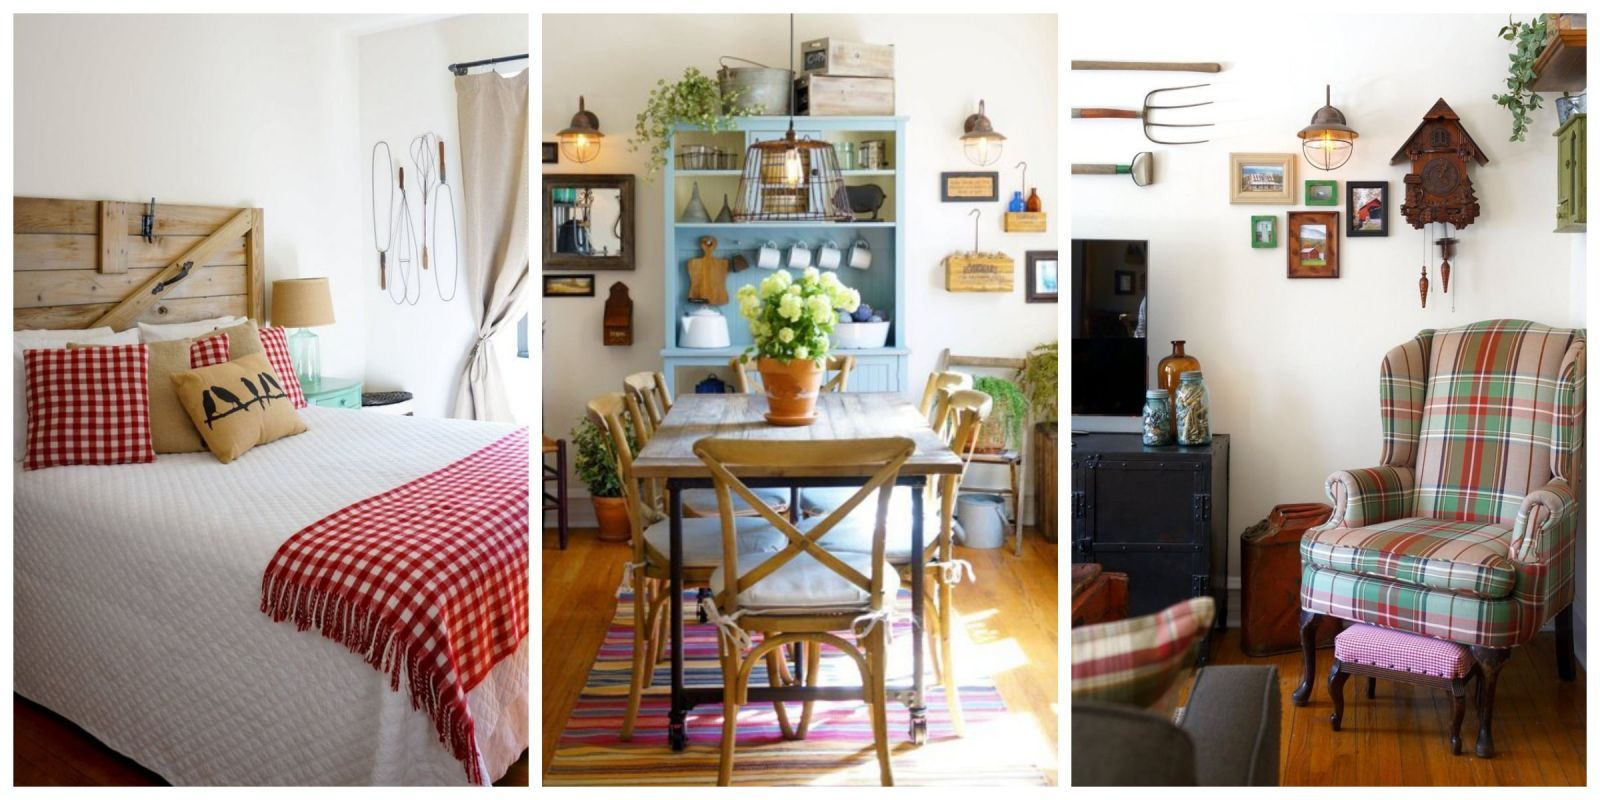 We Love The Primitive Country Decor In This City Apartment